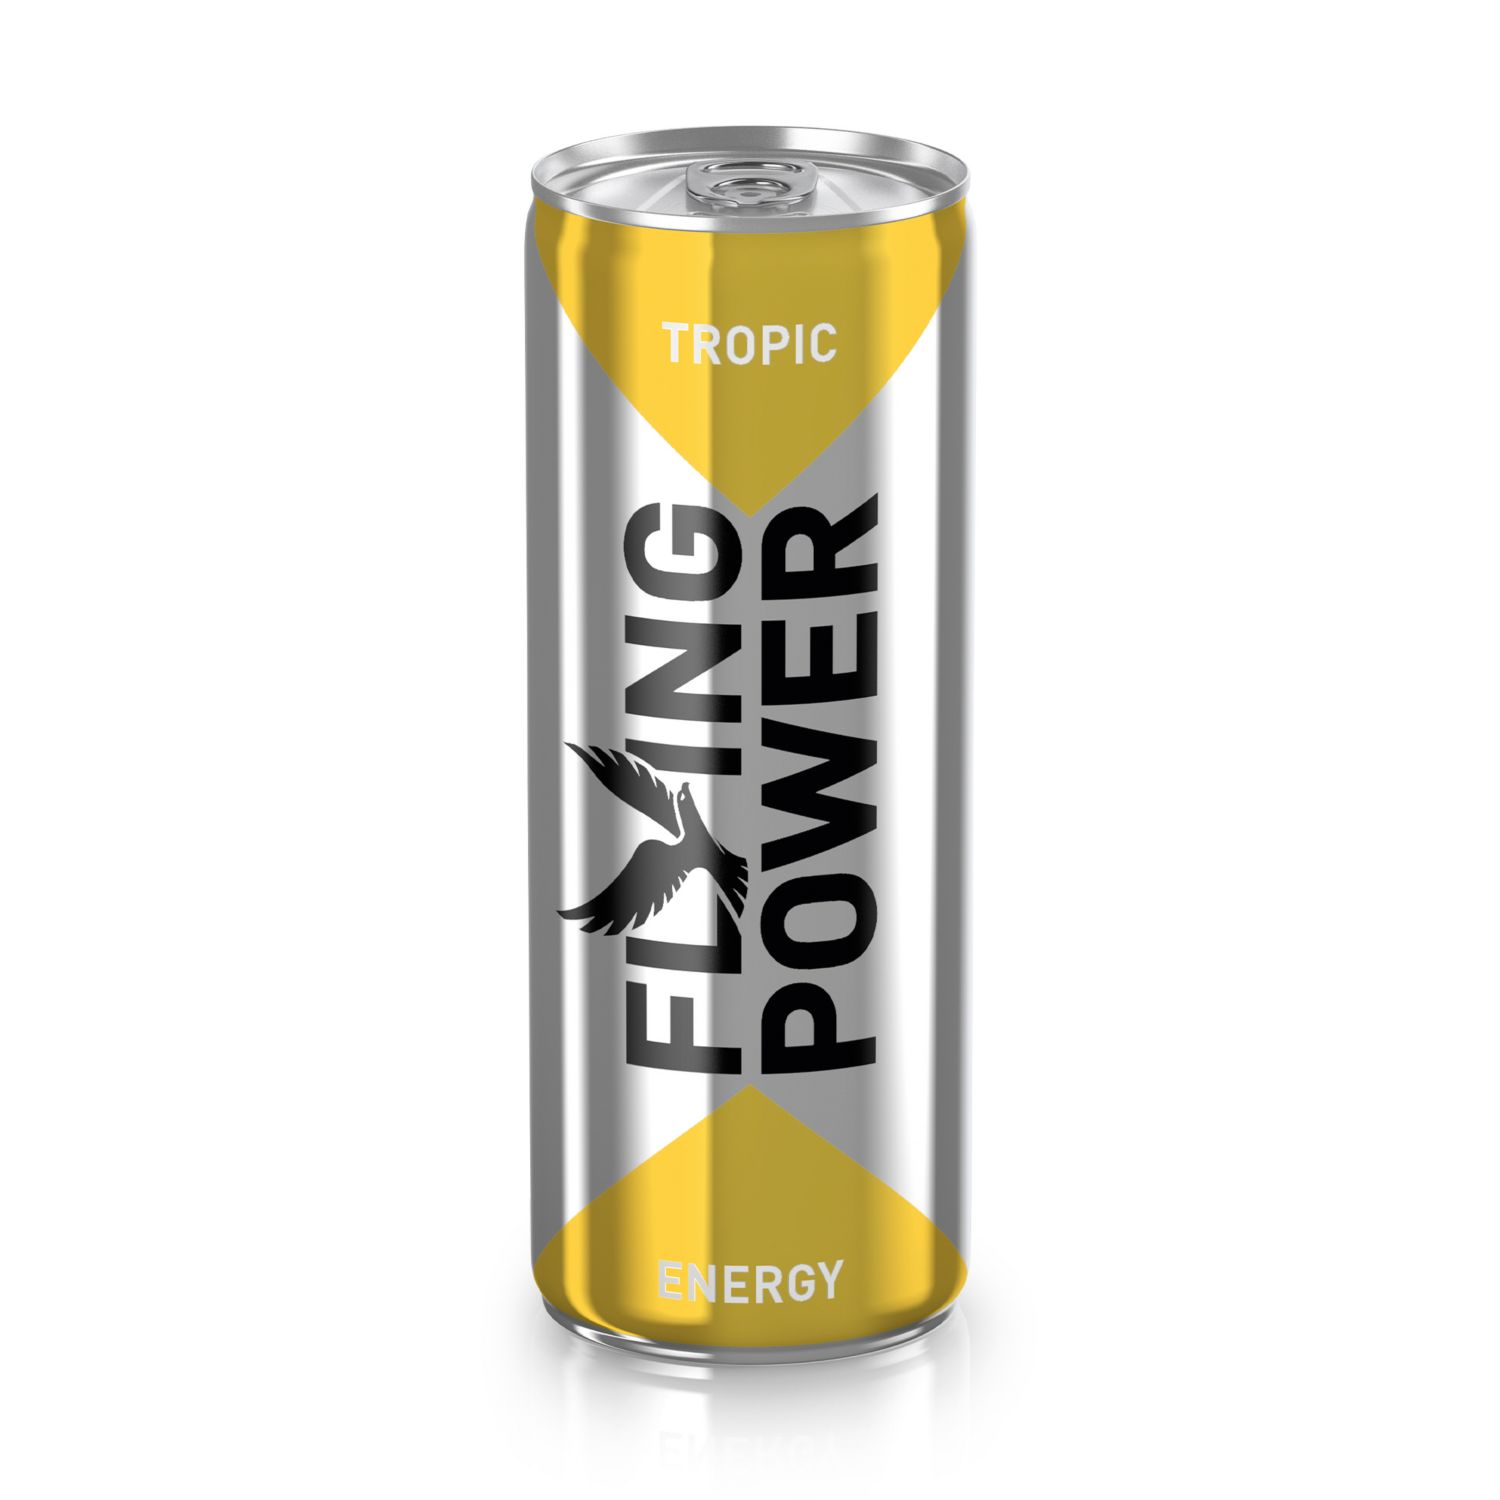 FLYING POWER Energy Drink, Tropic. Guave